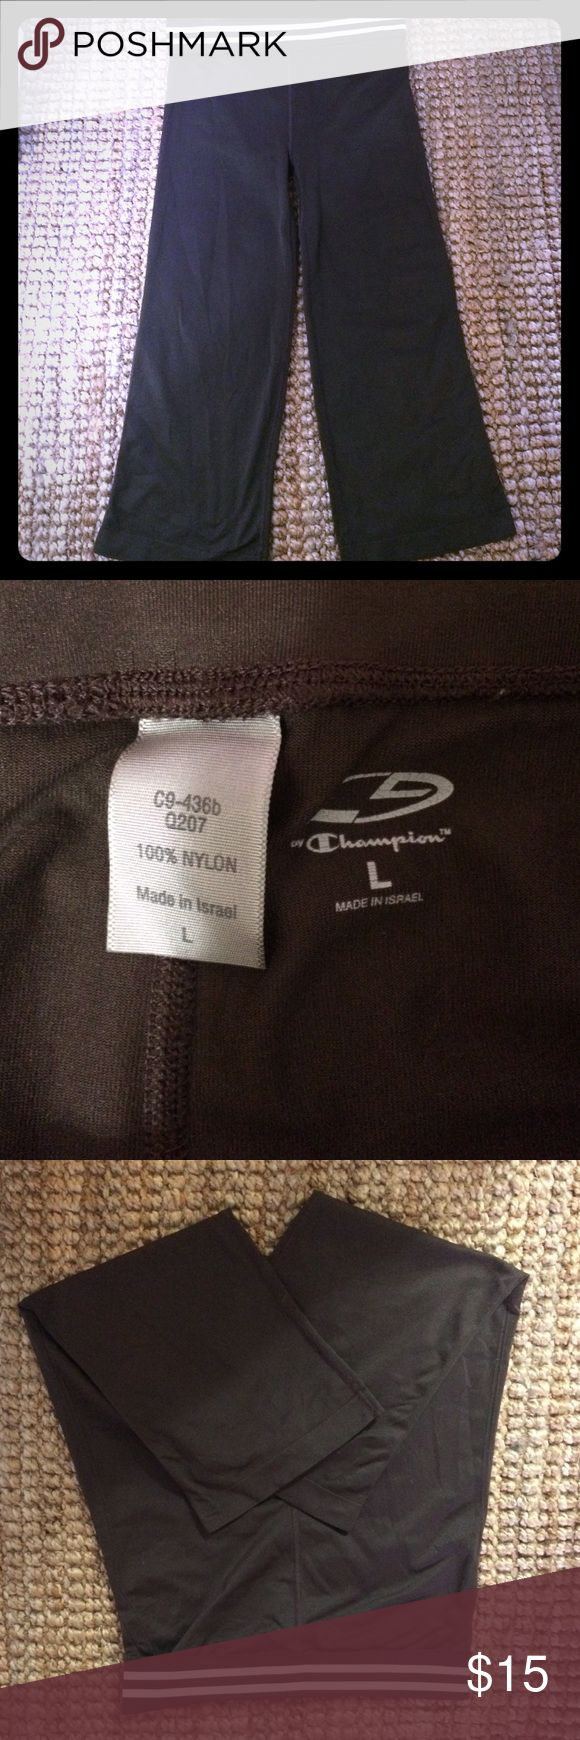 Champion jogger capris Brown jogger capris. Stretchy and comfortable for the gym. Size large Champion Pants Capris